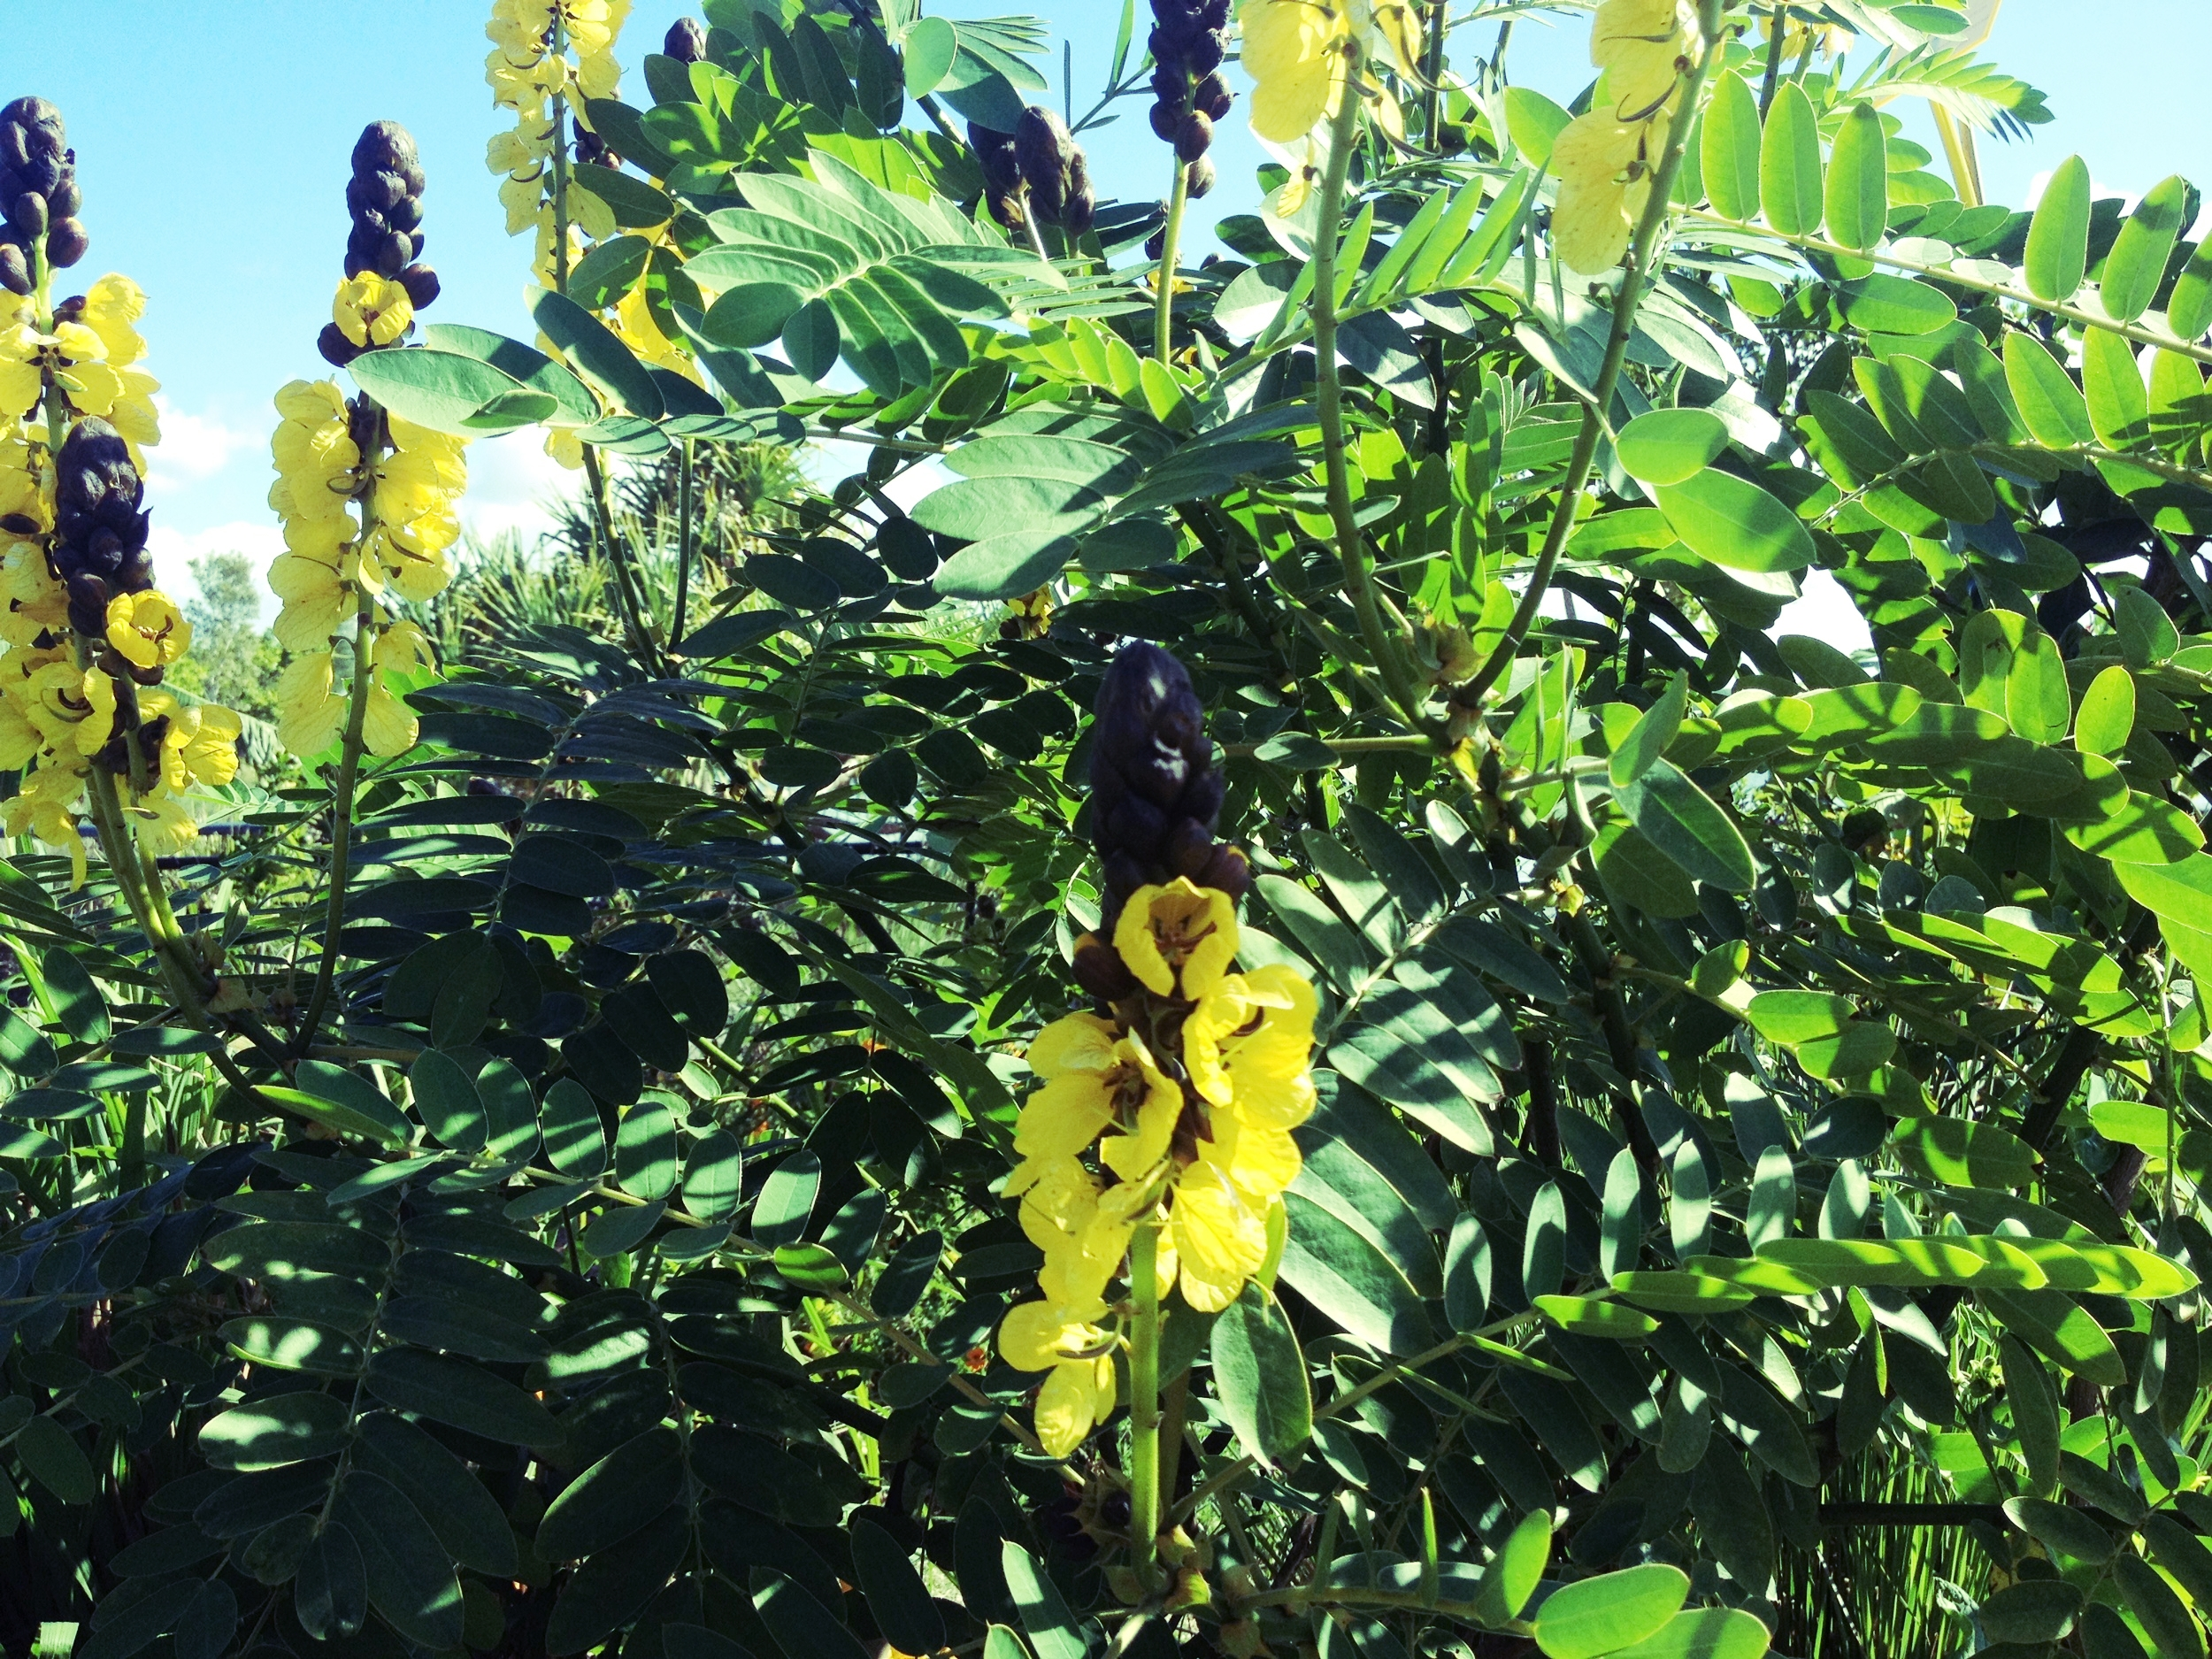 Popcorn cassia.   A nitrogen fixing legume that produces beautiful yellow flowers that smell like freshly popped popcorn. It provides a source of nitrogen rich mulch, useful for establishing a food forest garden.